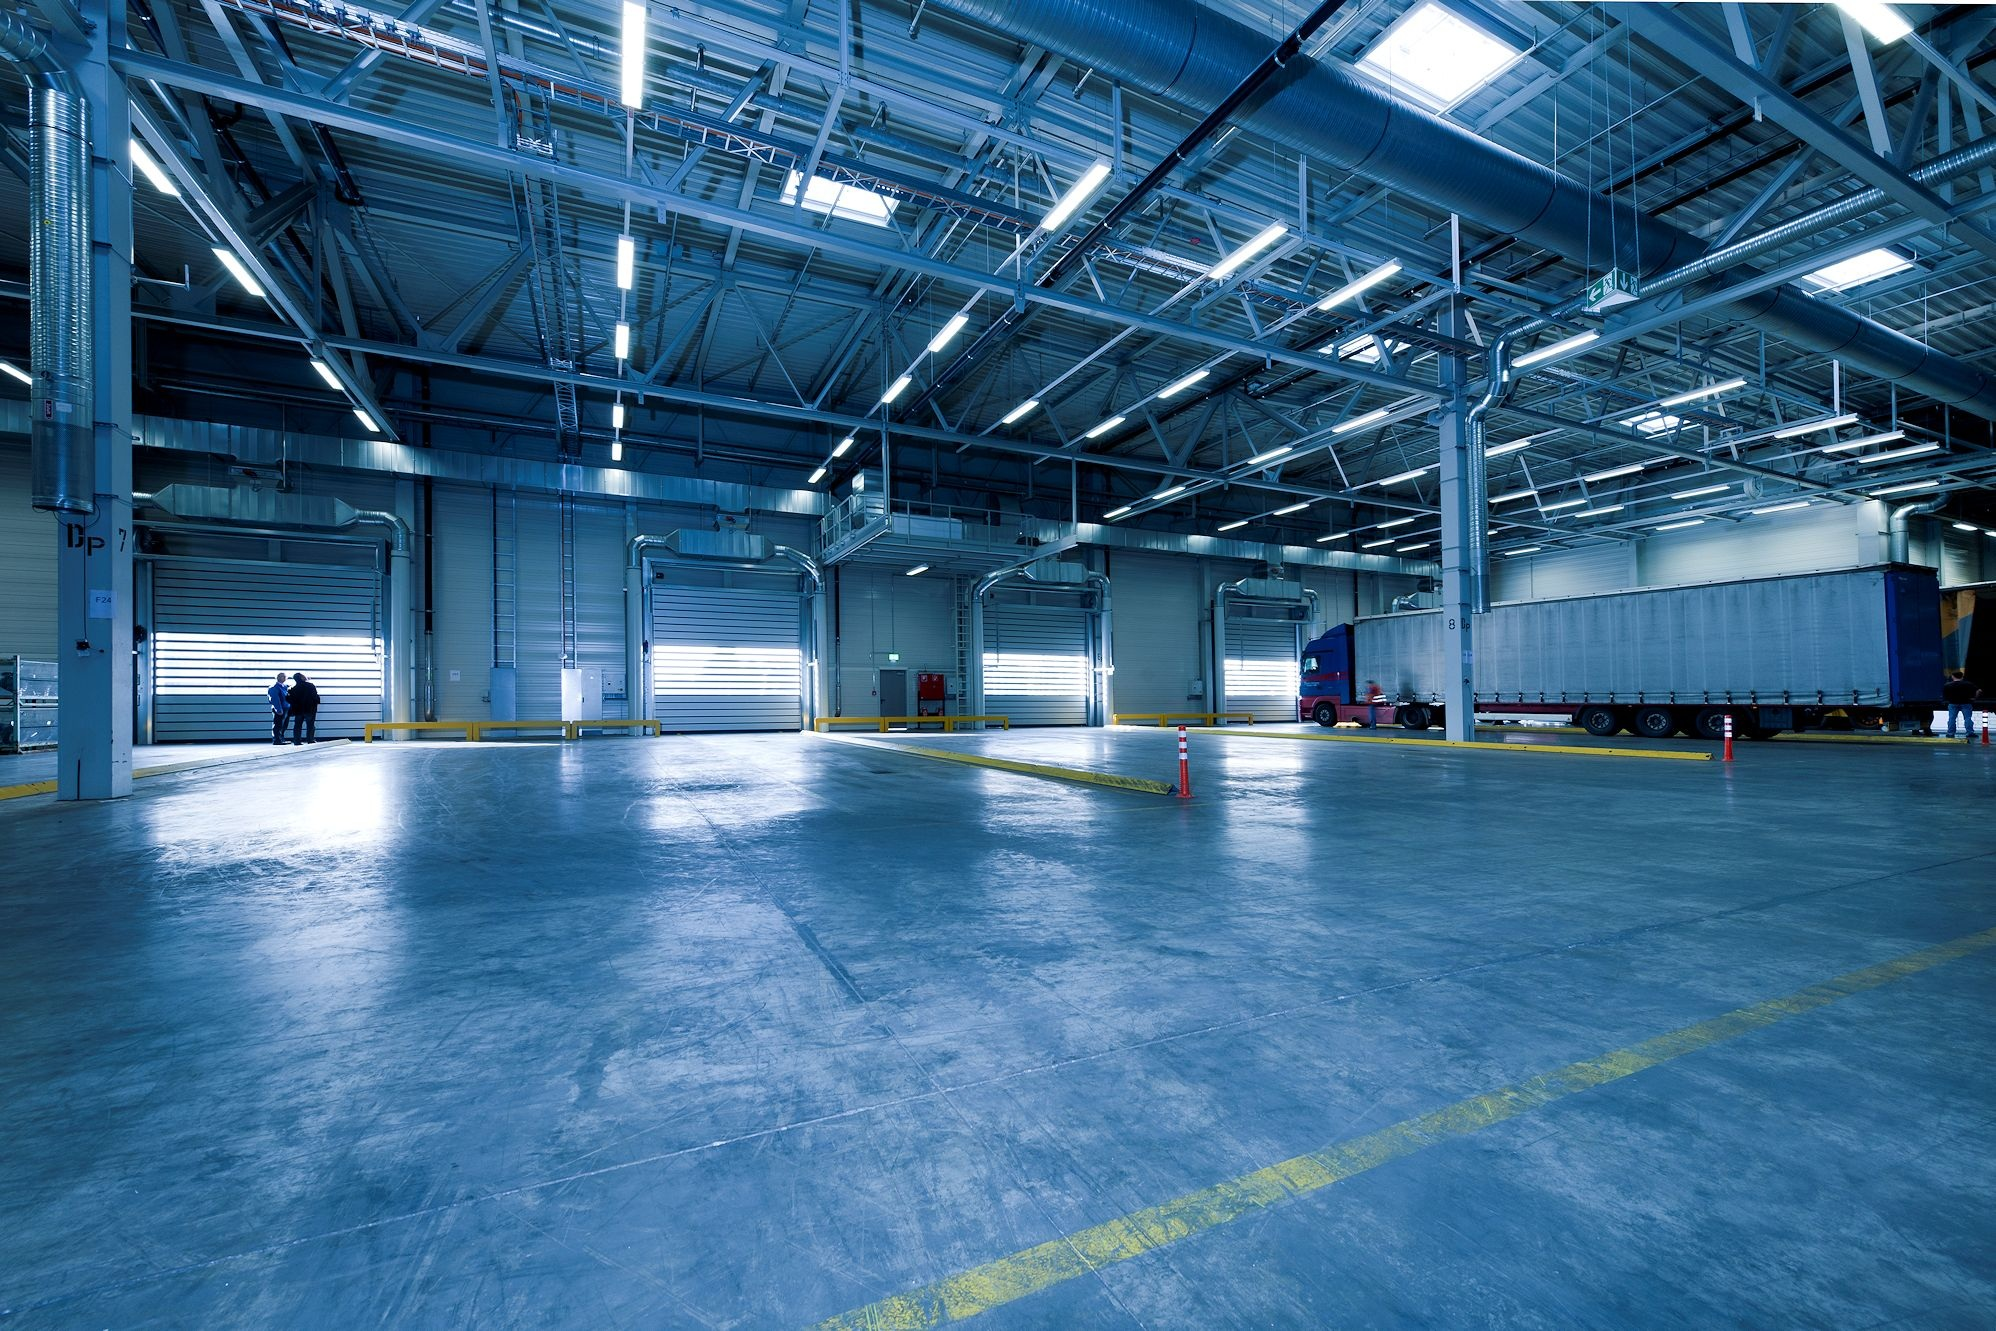 An image of an industrial space that requires floor safety graphics.